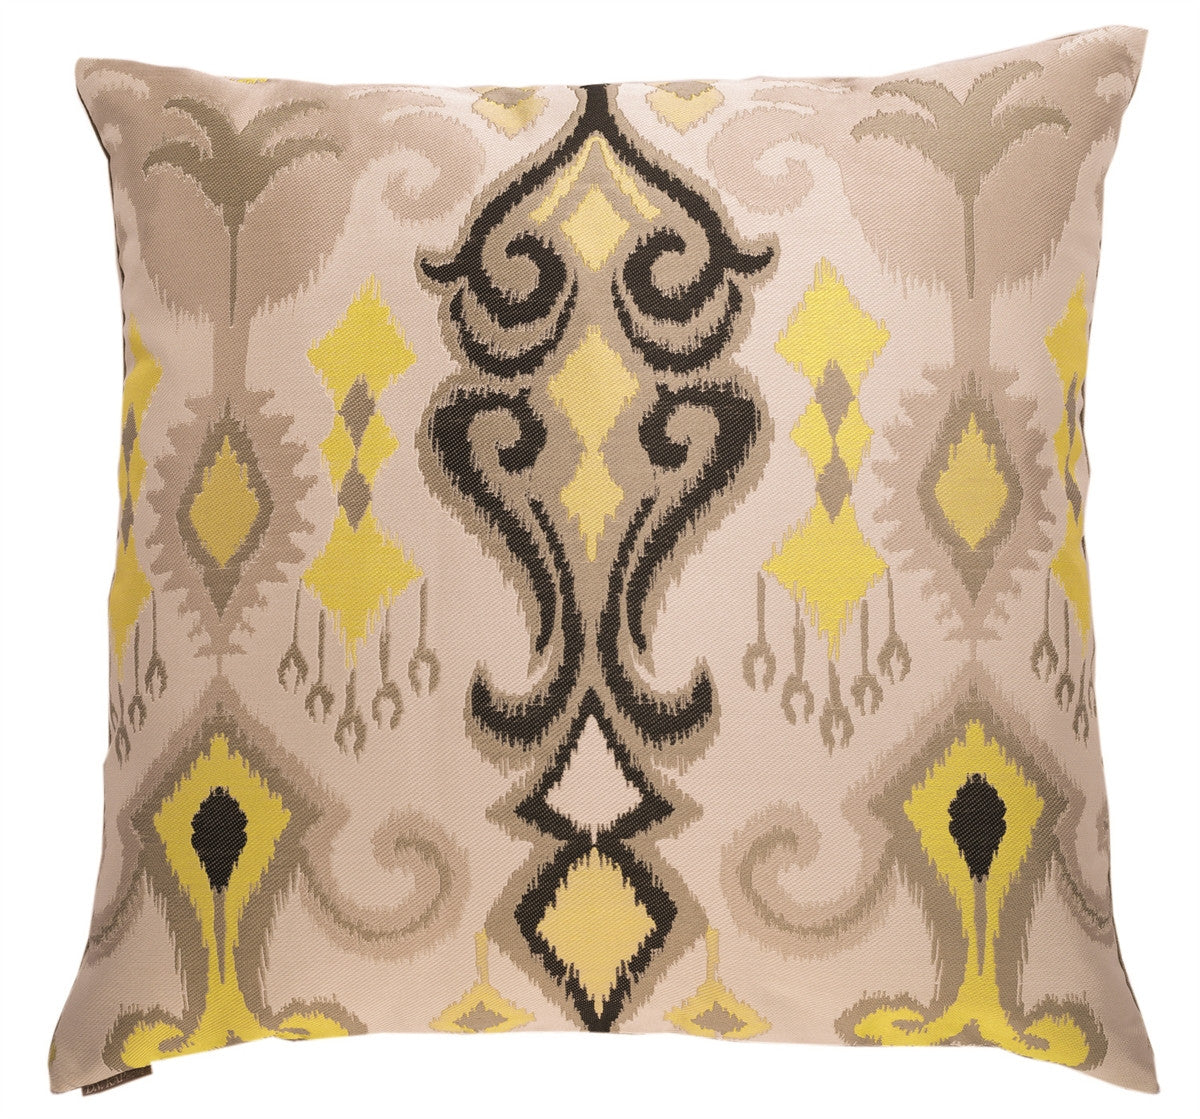 DV Kap Home - Vibrant  Toss Pillow